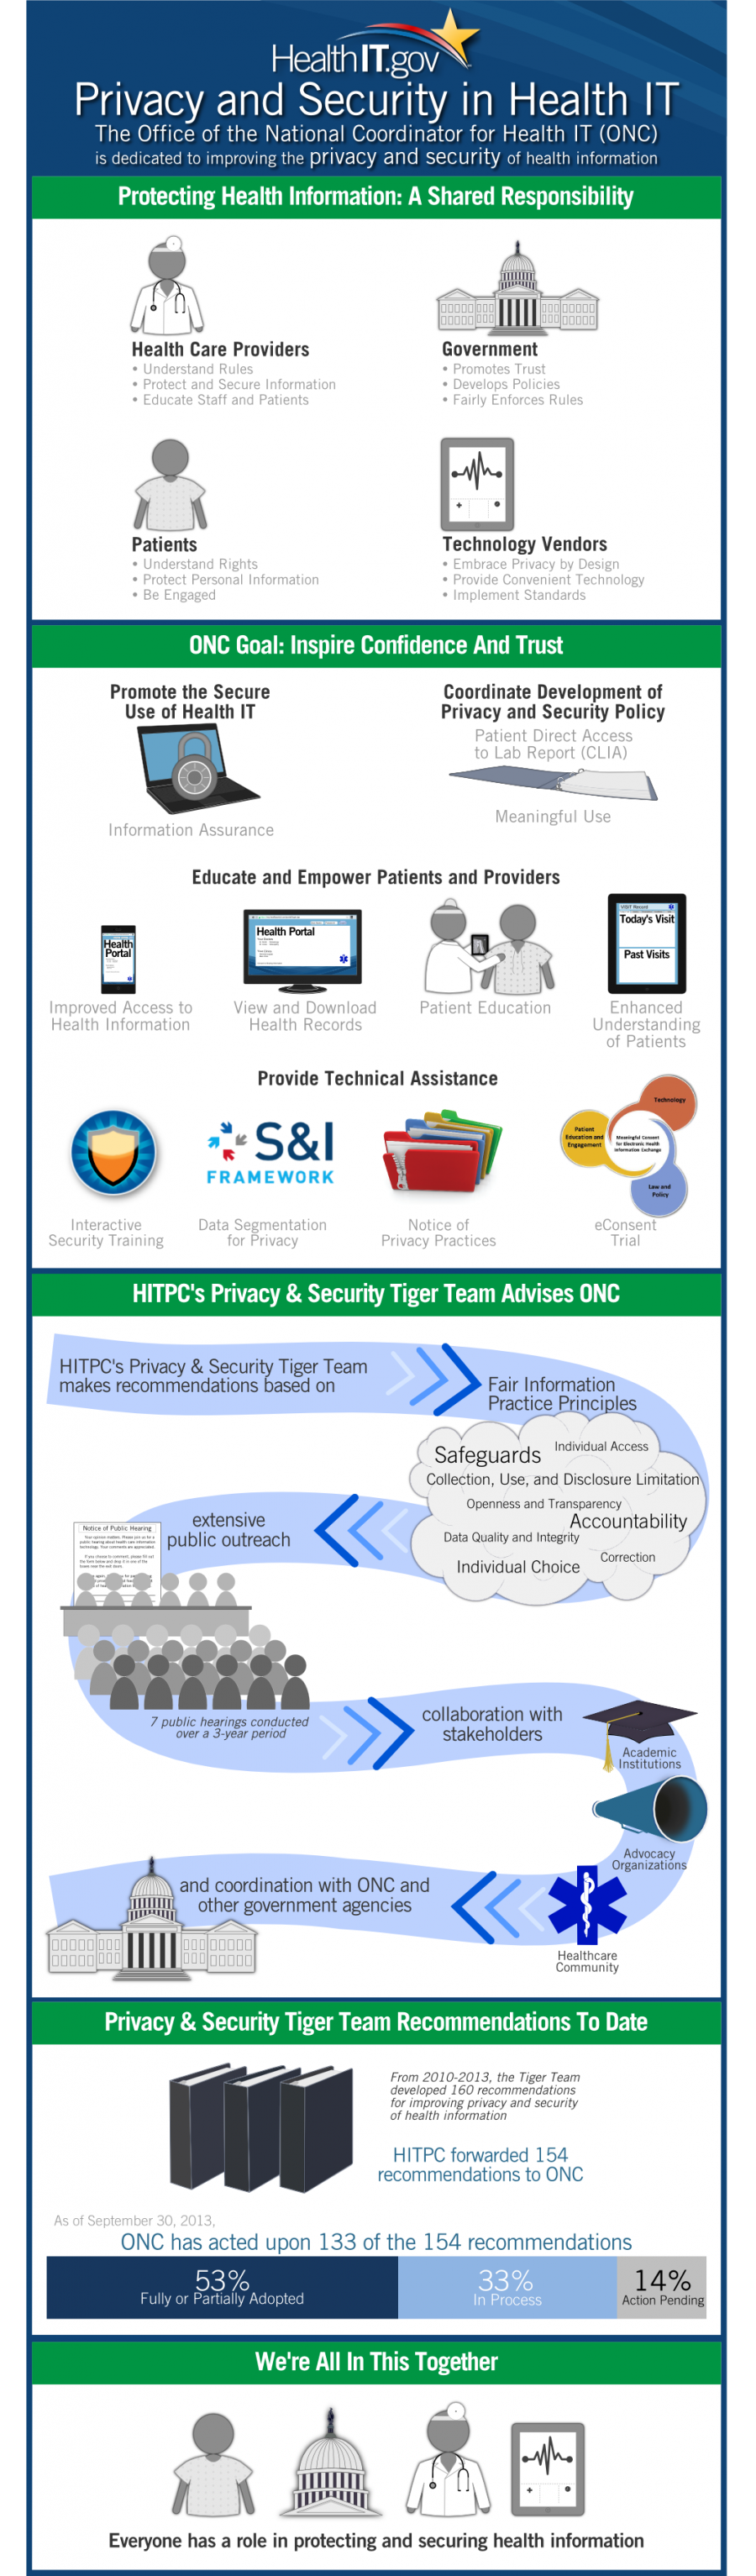 ONC Advances Privacy and Security in Health IT Infographic